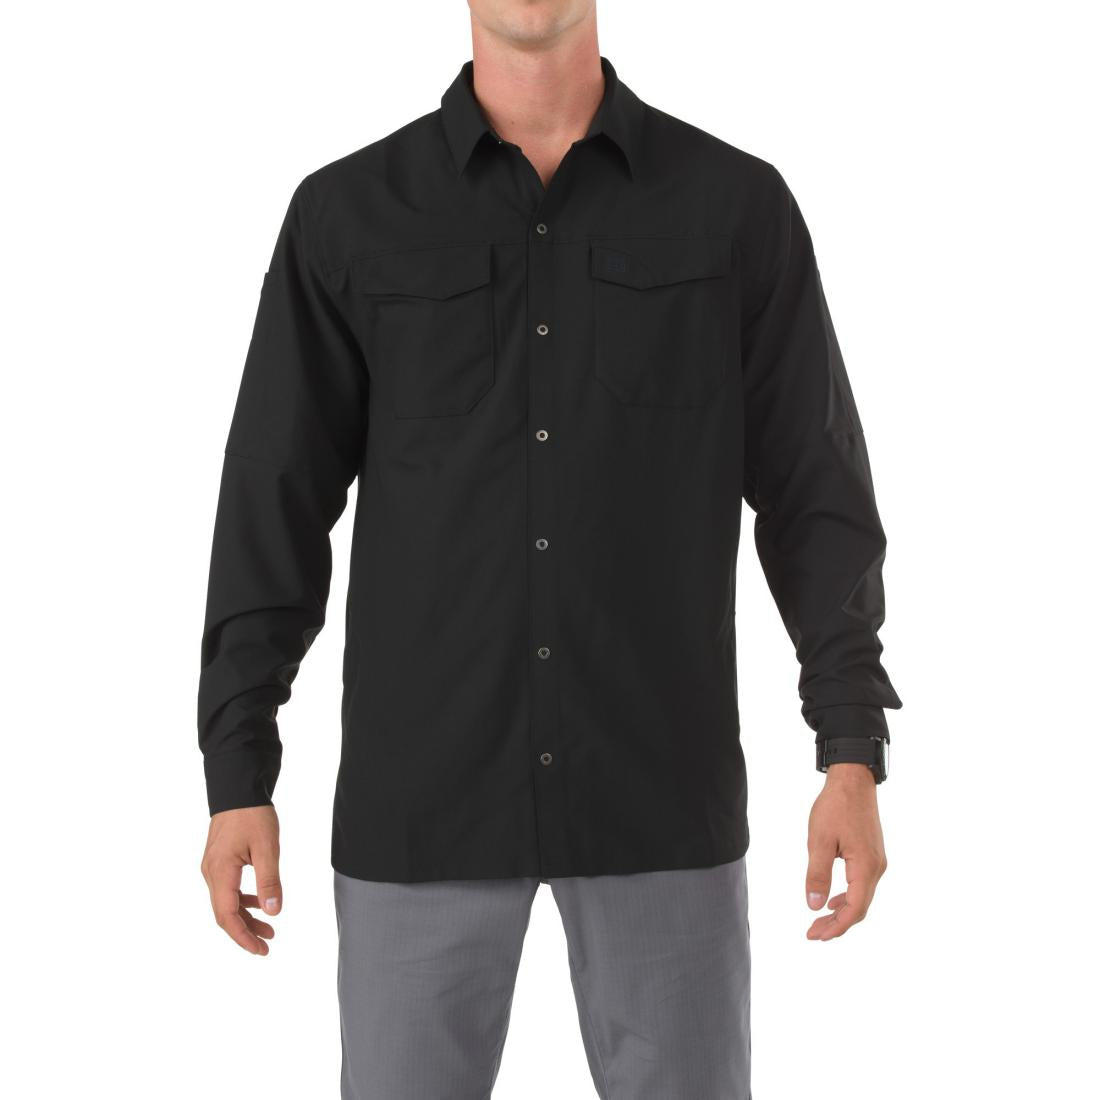 5.11 Tactical 72417 Men Freedom Flex Woven Long Sleeve Shirt Black